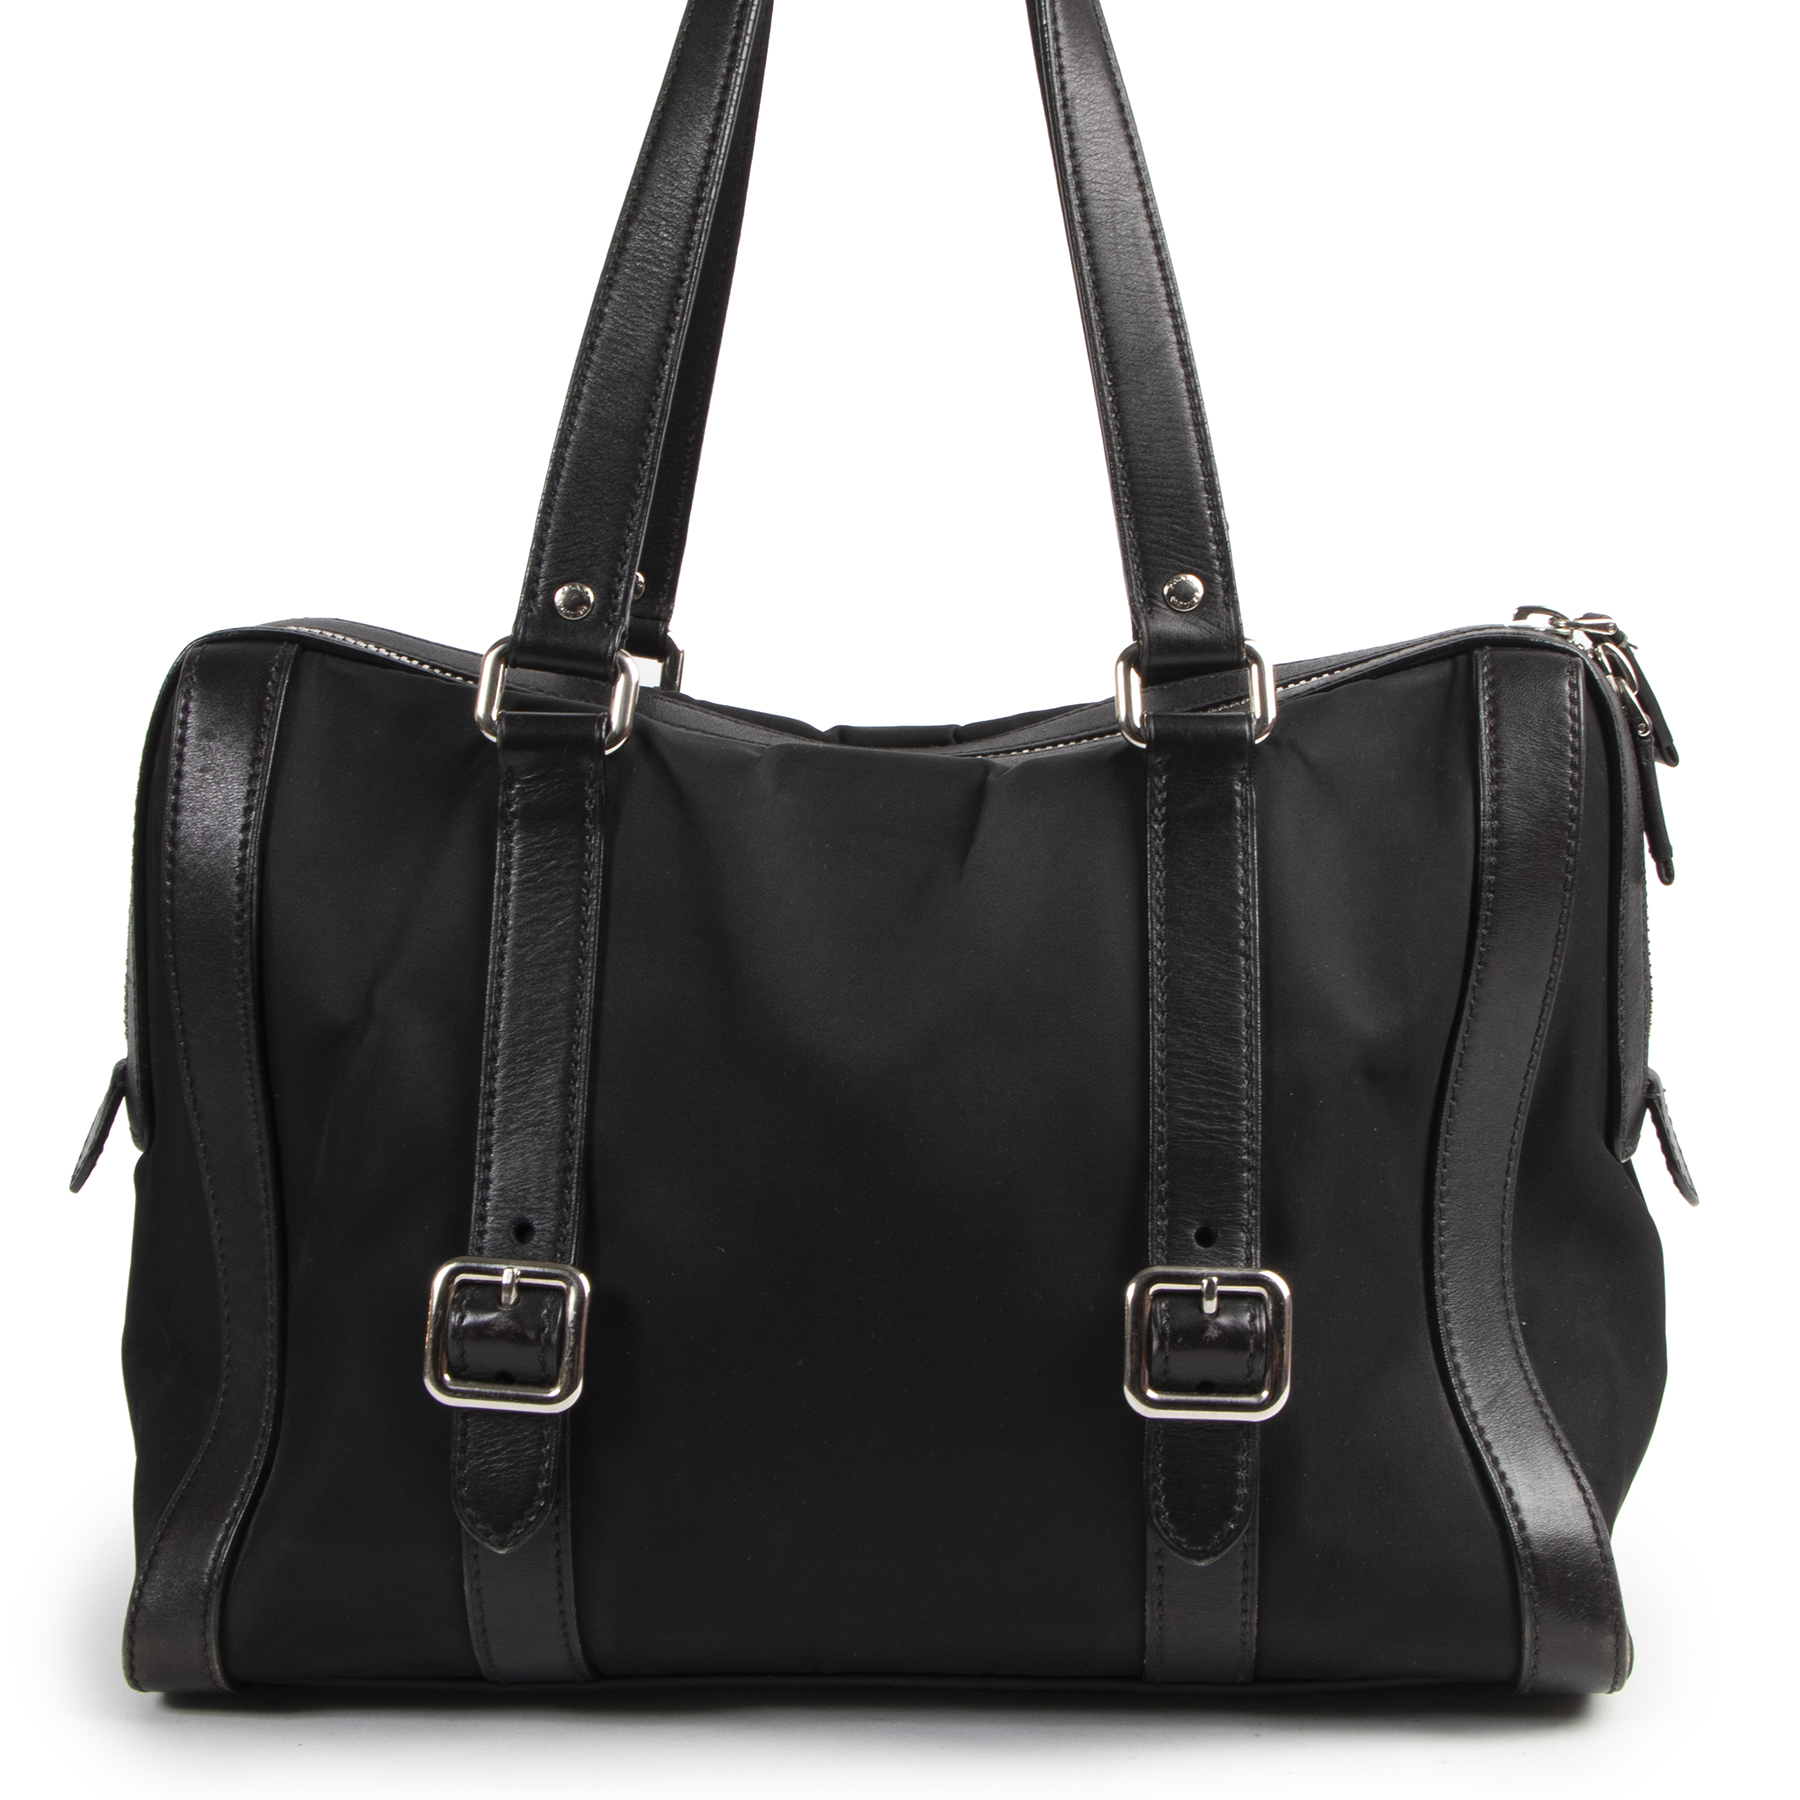 are you looking for an authentic designer bag for the best price? Prada Black Nyon Leather Shoulder Bag